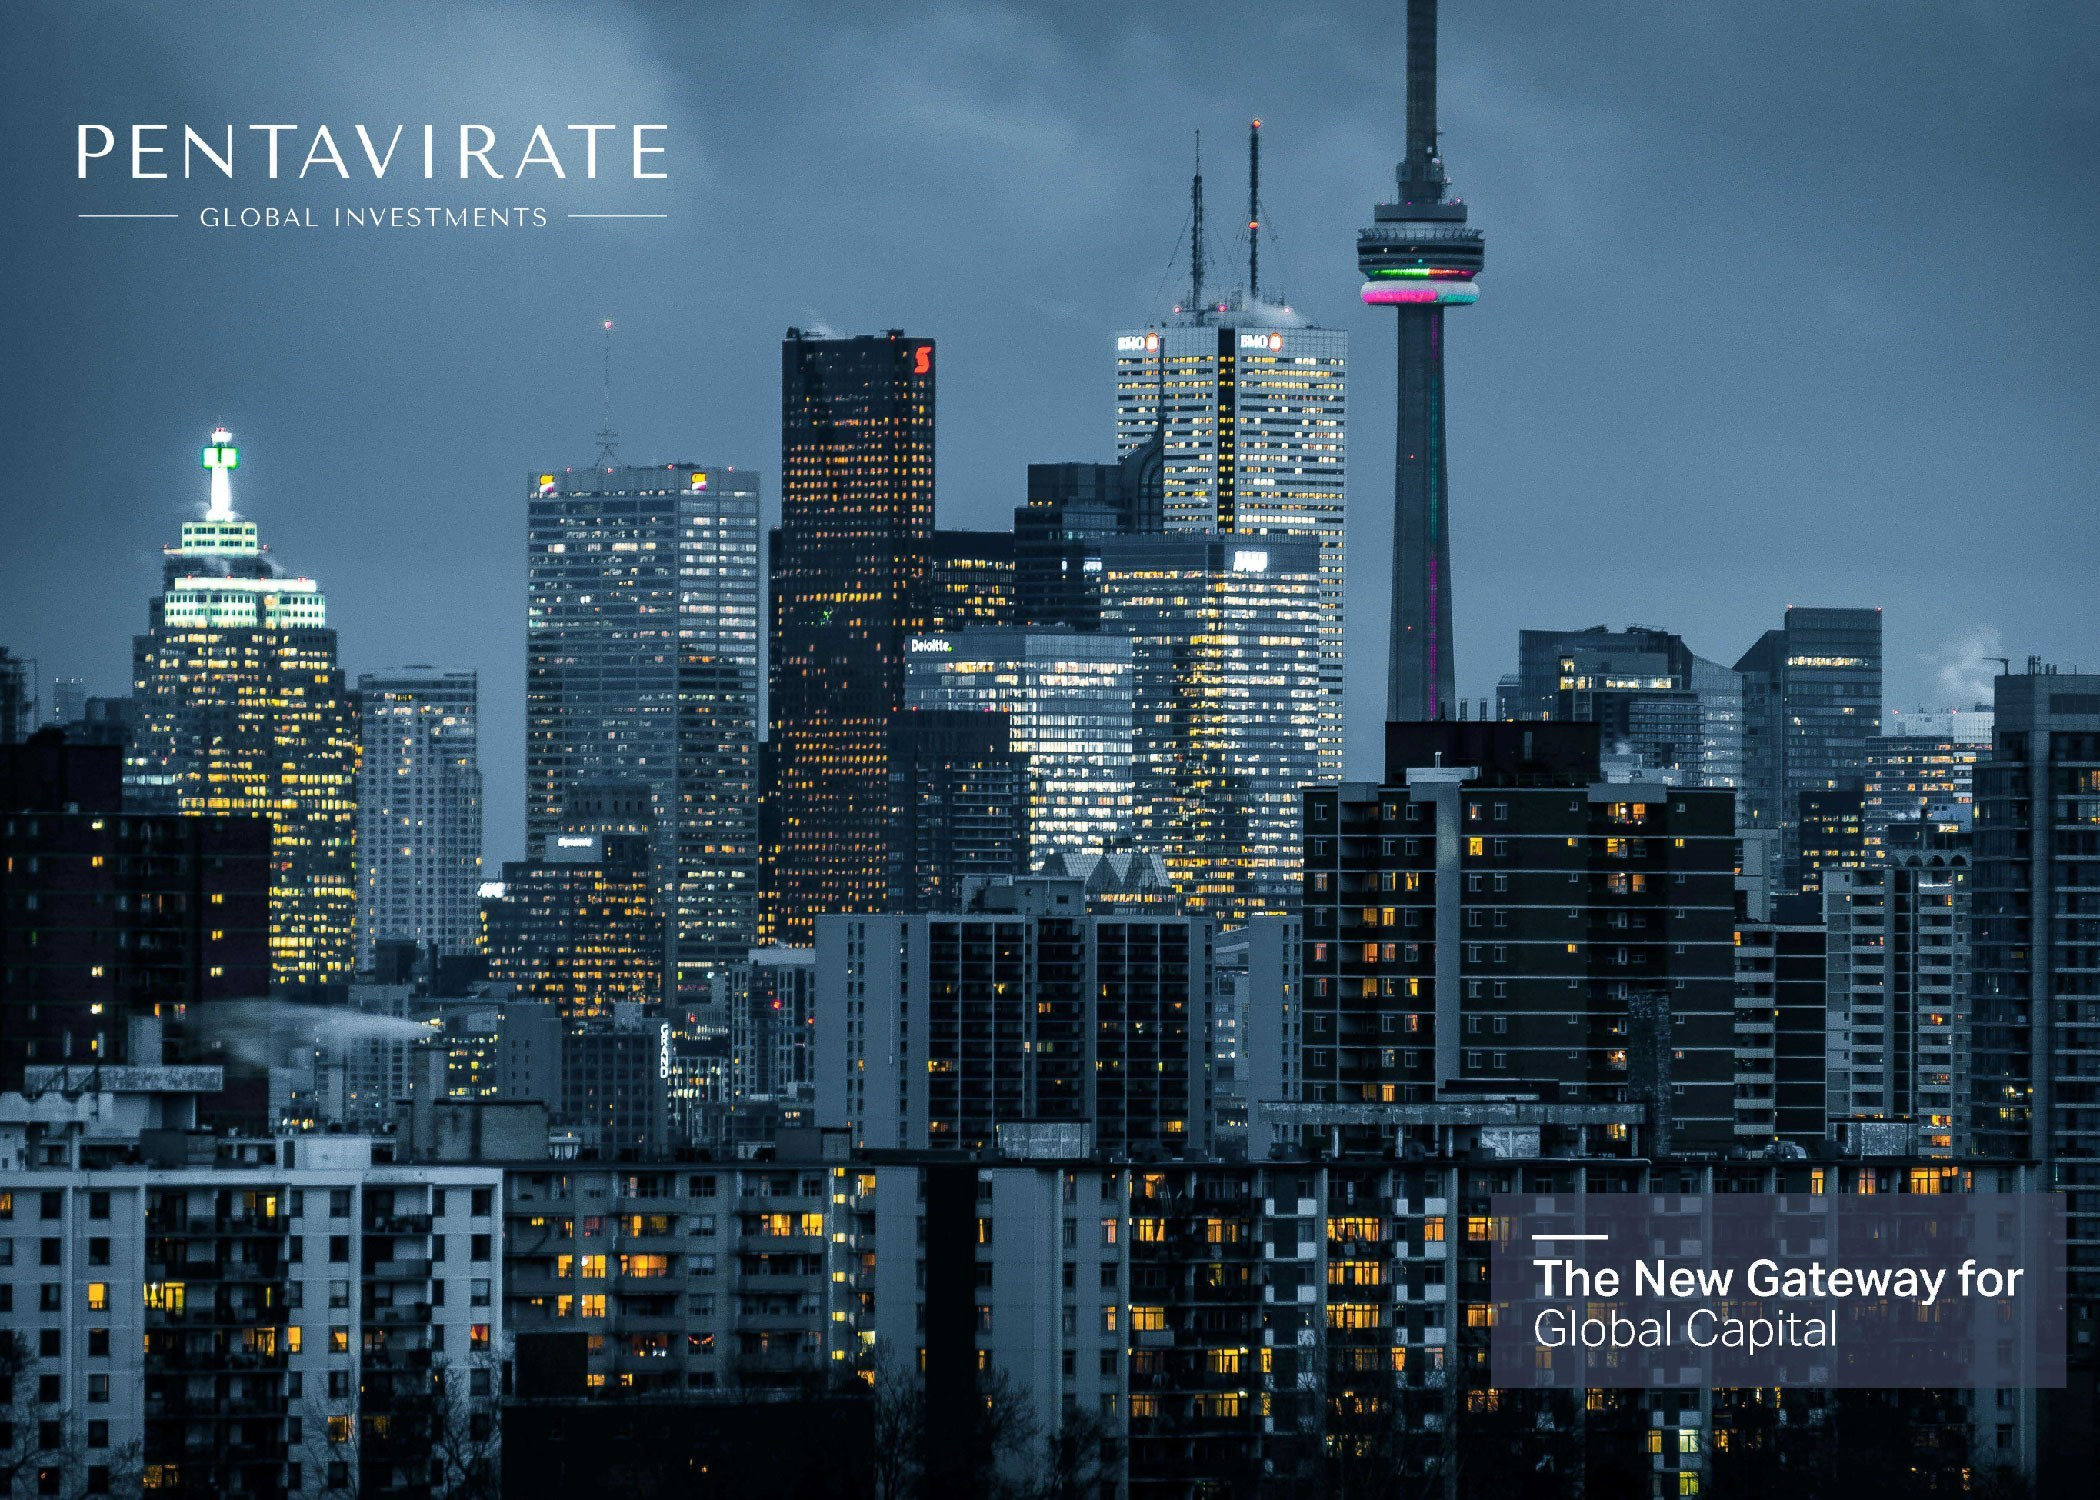 Cover of the Pentavirate brochure.